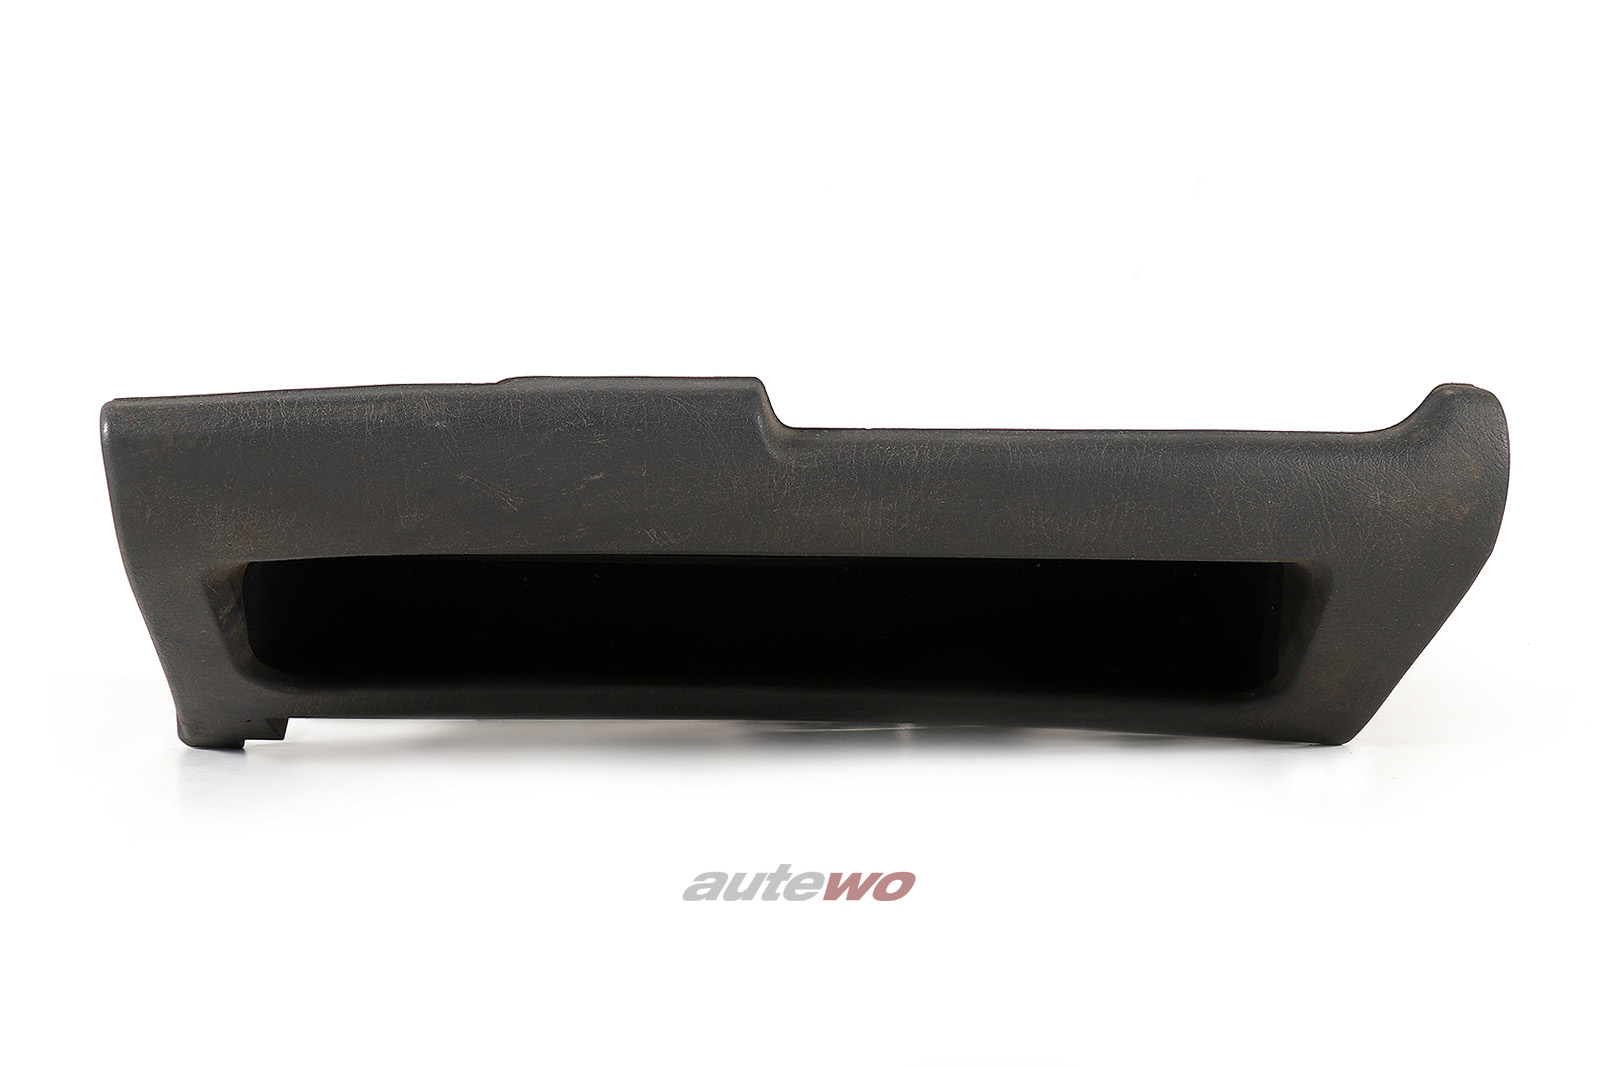 8A1863075 Audi 80 B4/S2/RS2/Coupe/Cabrio Typ 89 Ablagefach Doppelairbag